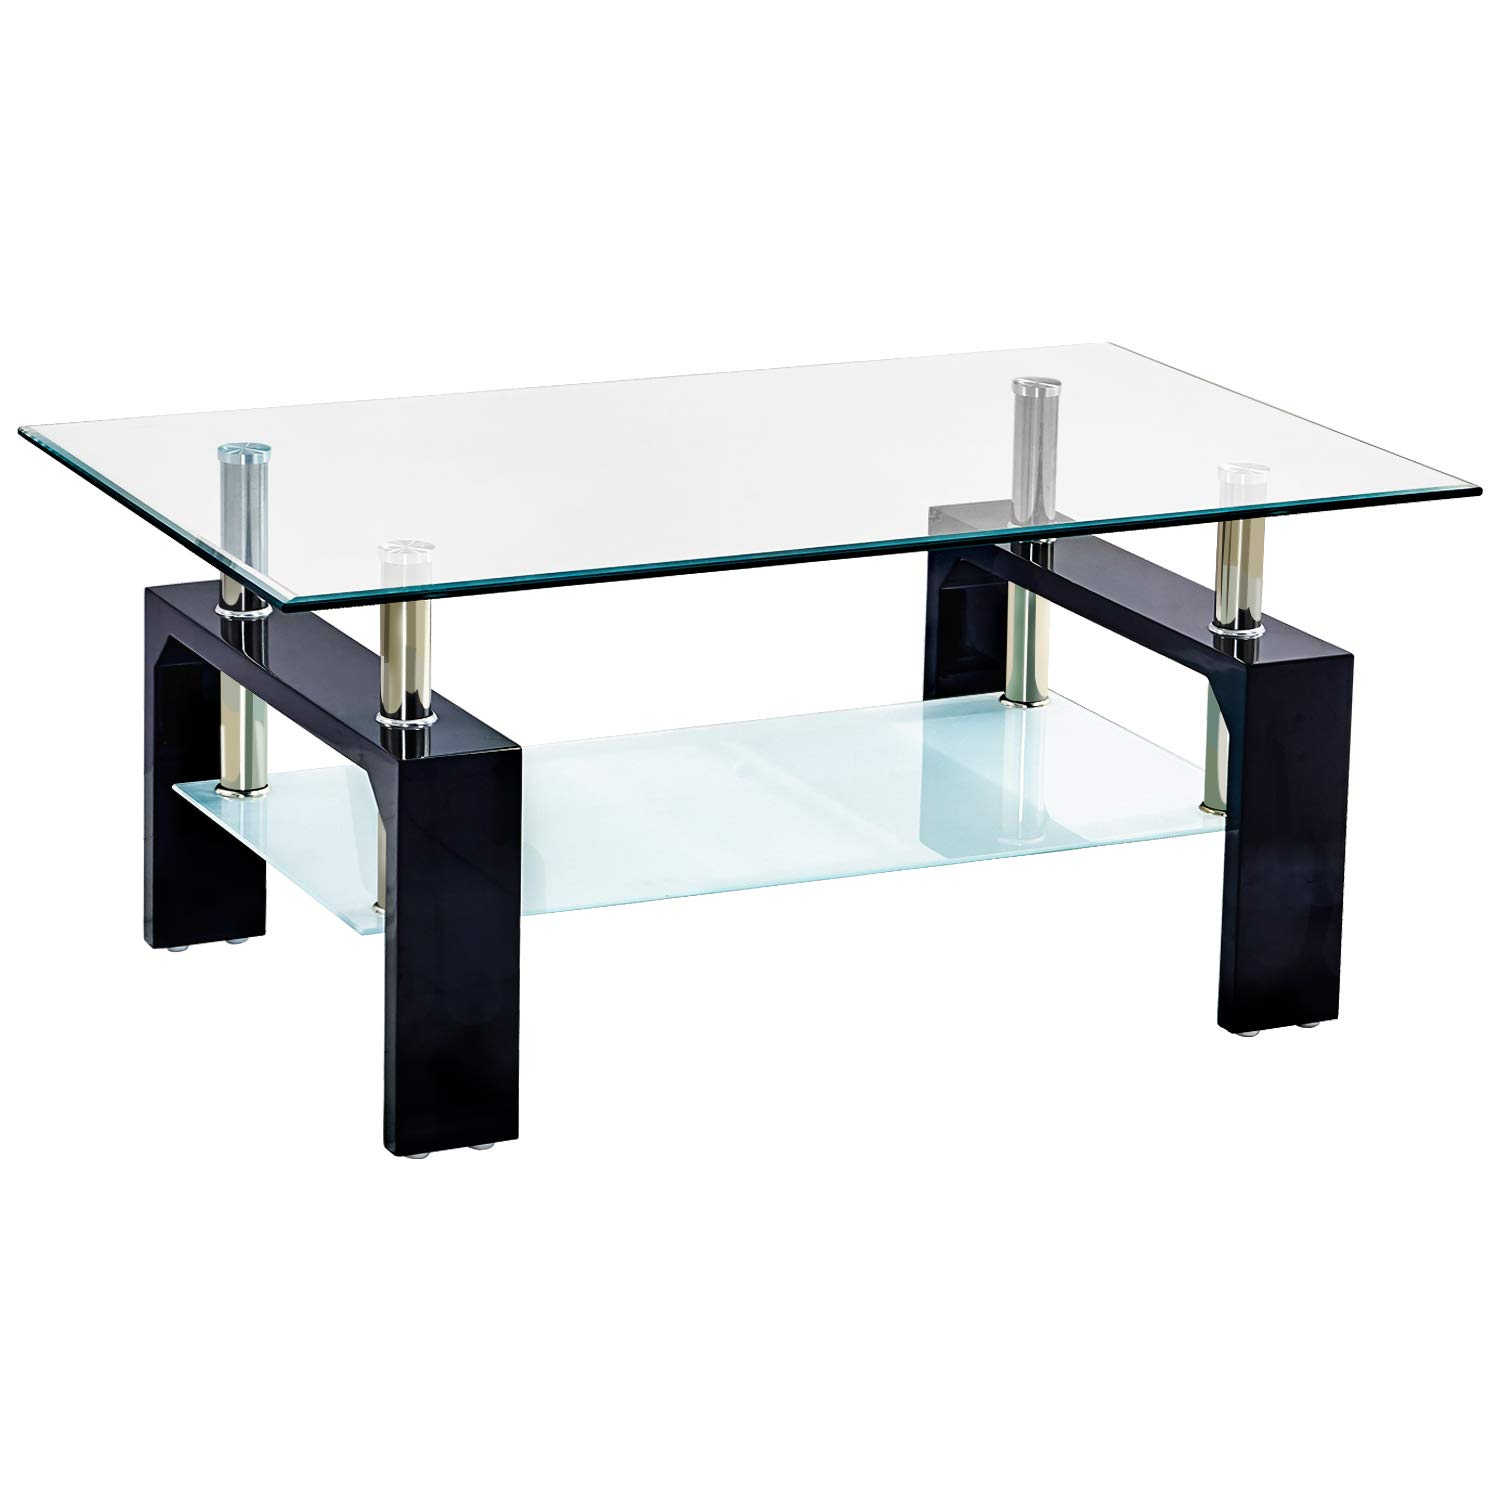 Trustiwood Rectangular Tempered Glass Coffee Table Tea Tale Wood and Chrome End Side Table with 2-Tier Shelf Suit for Living Room Office Modern Home Furniture Black by Trustiwood